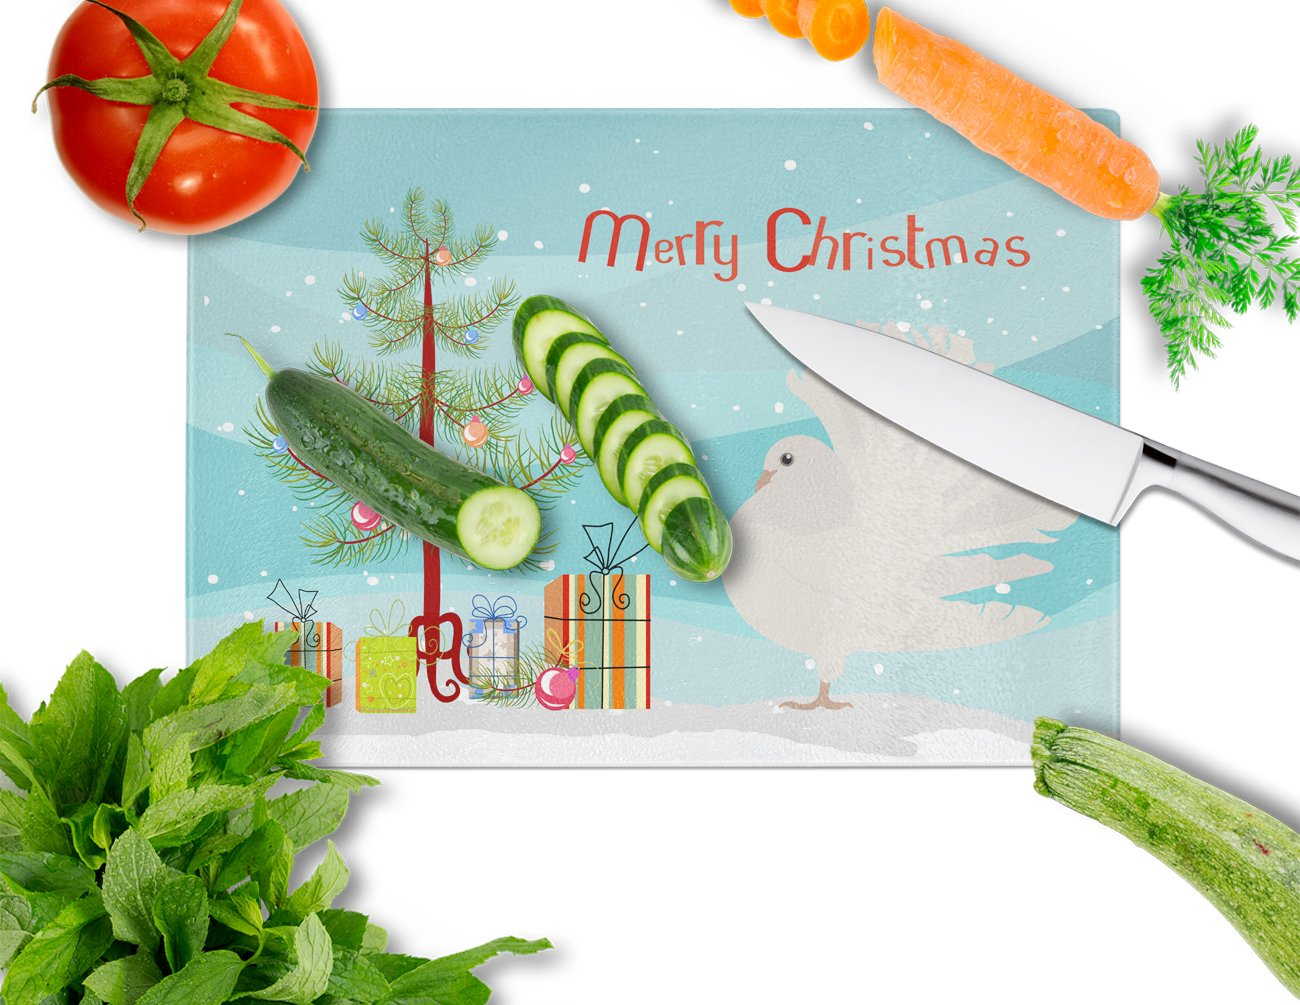 Silver Fantail Pigeon Christmas Glass Cutting Board Large BB9317LCB by Caroline's Treasures